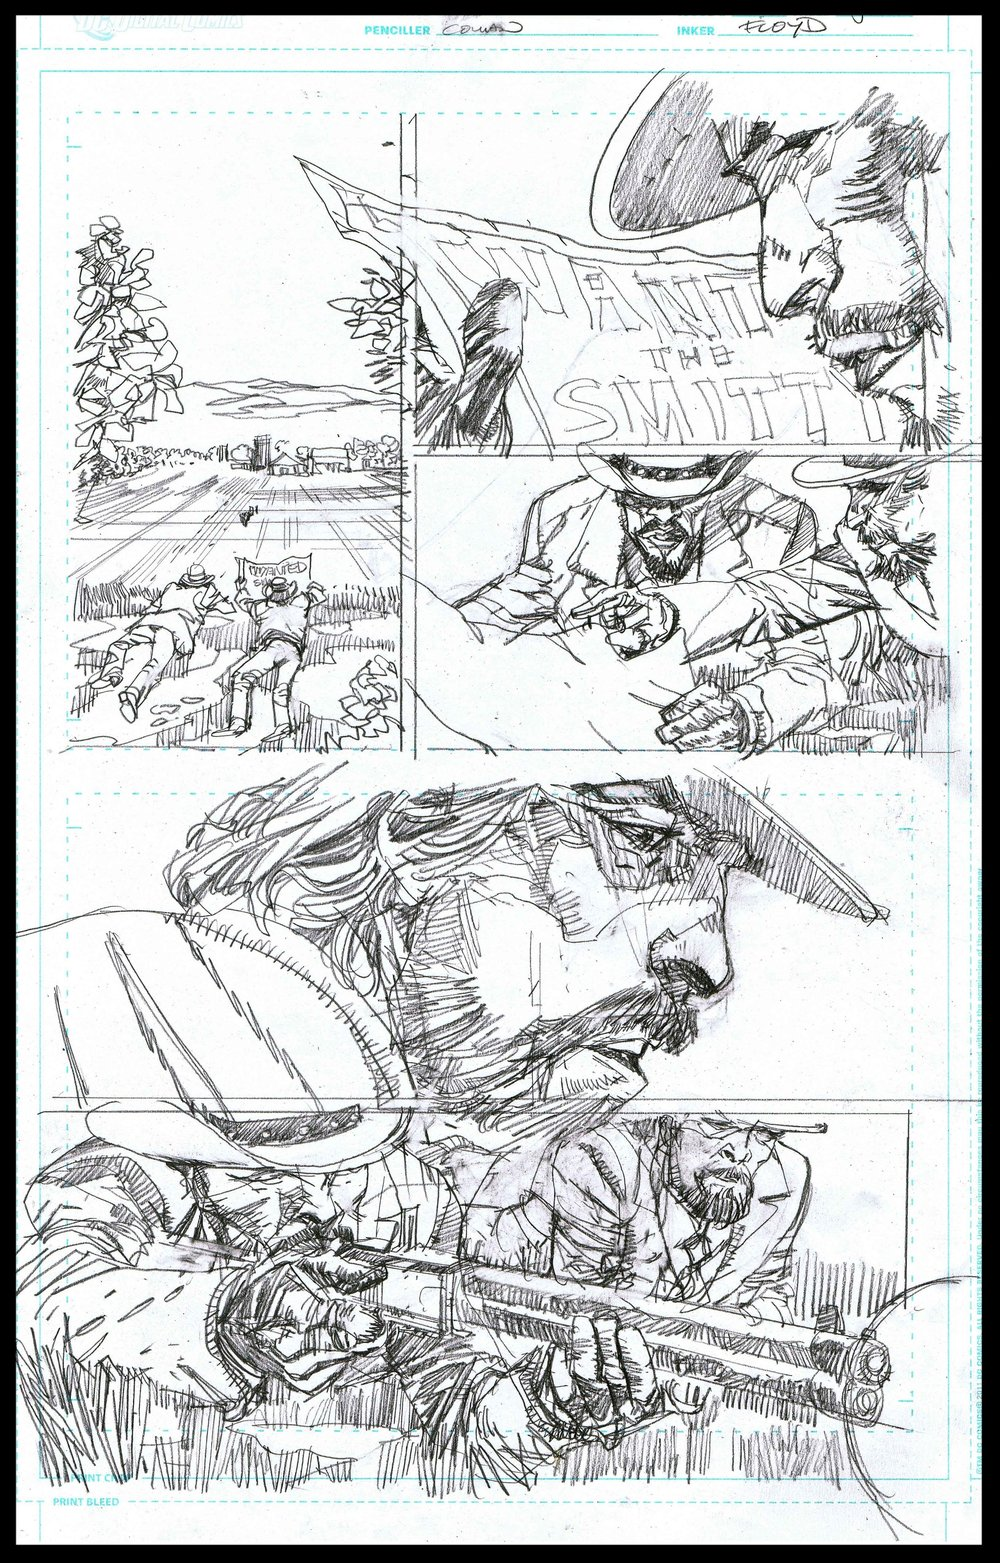 Django Unchained #3 - Page 5 - Pencils